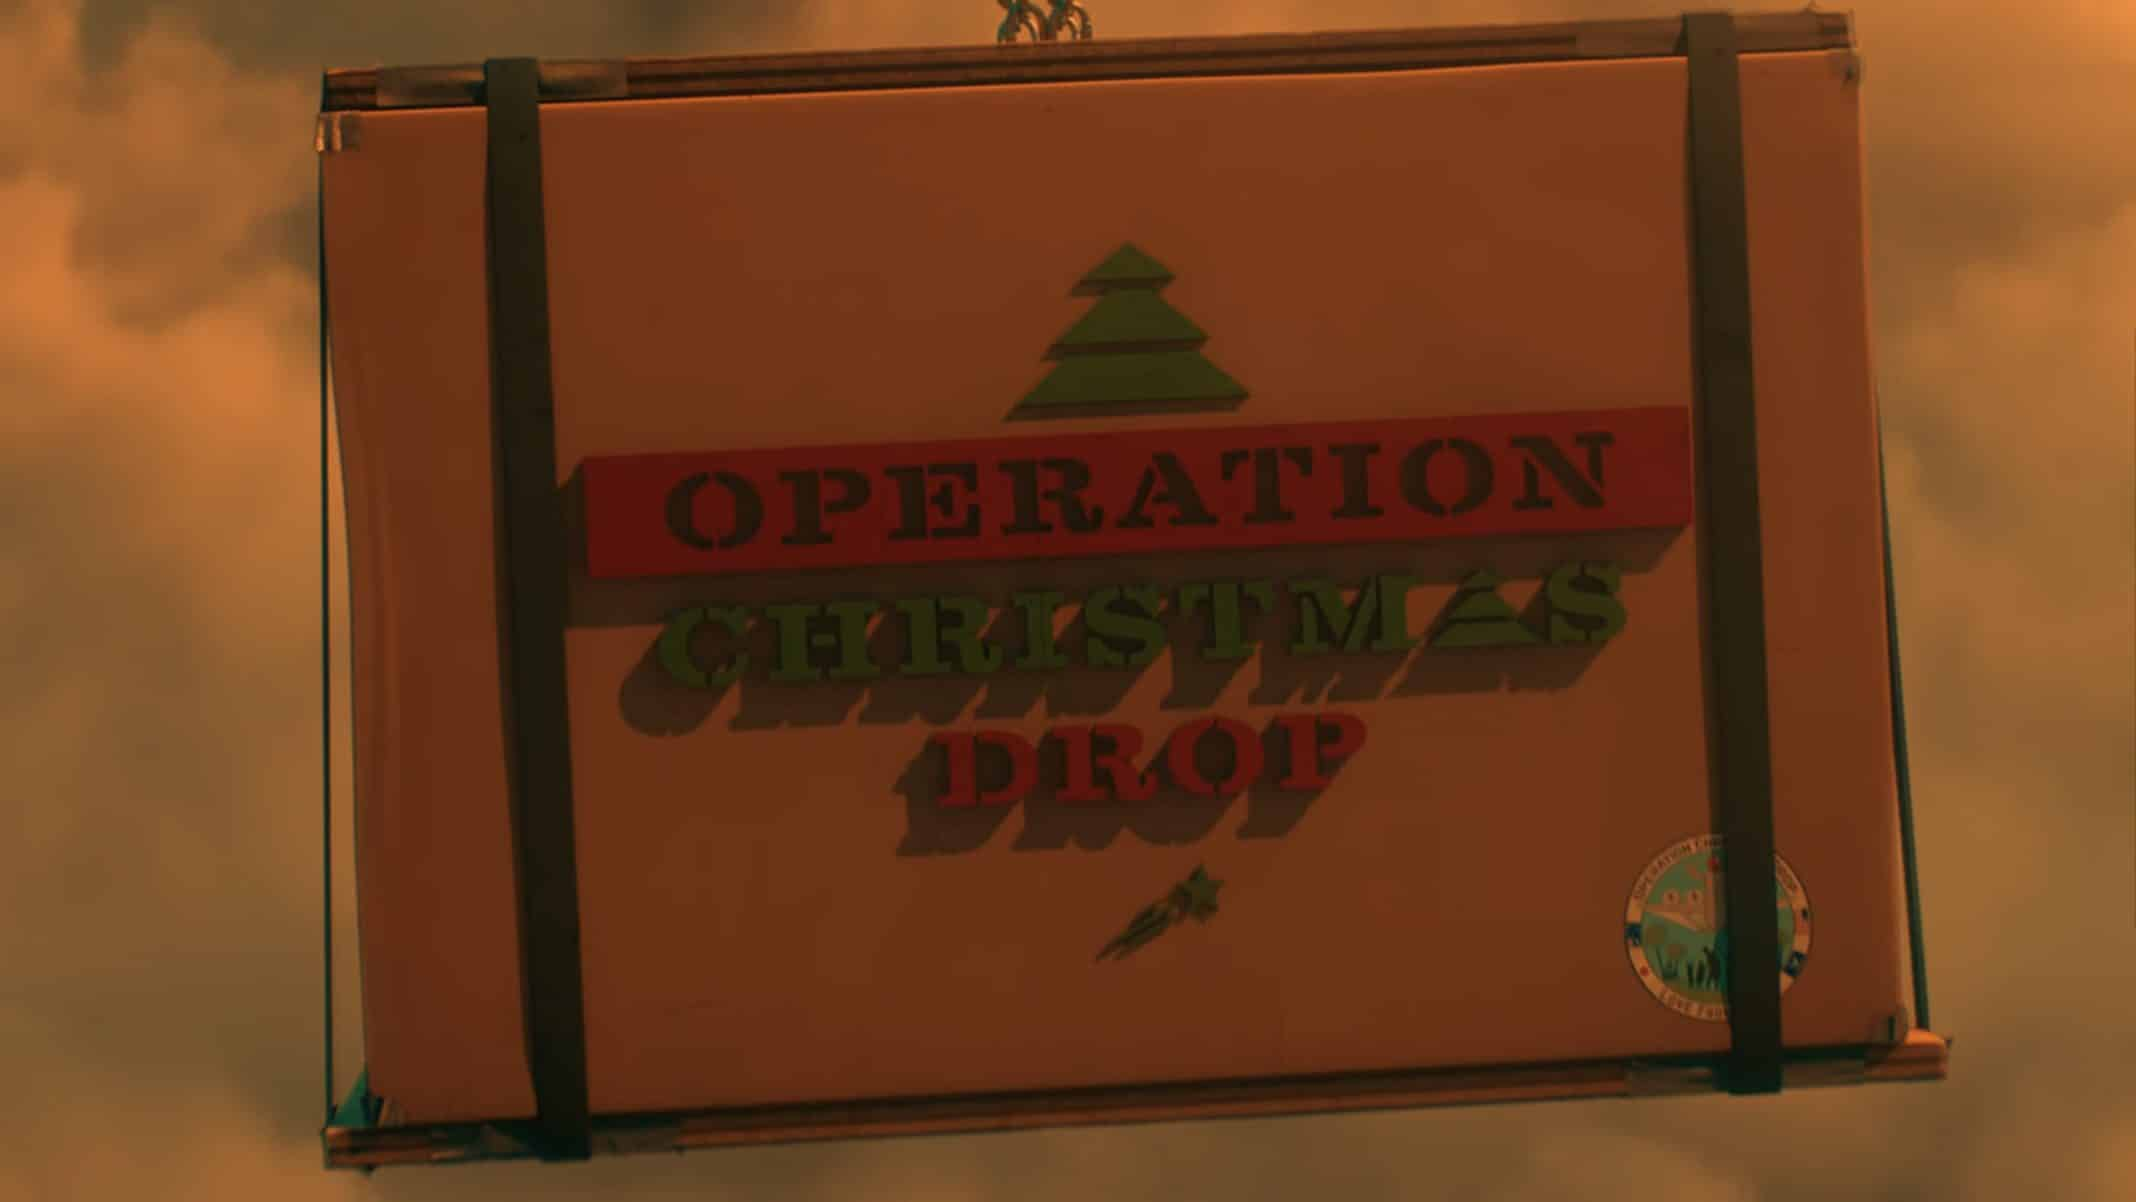 Title Card - Operation Christmas Drop (2020)